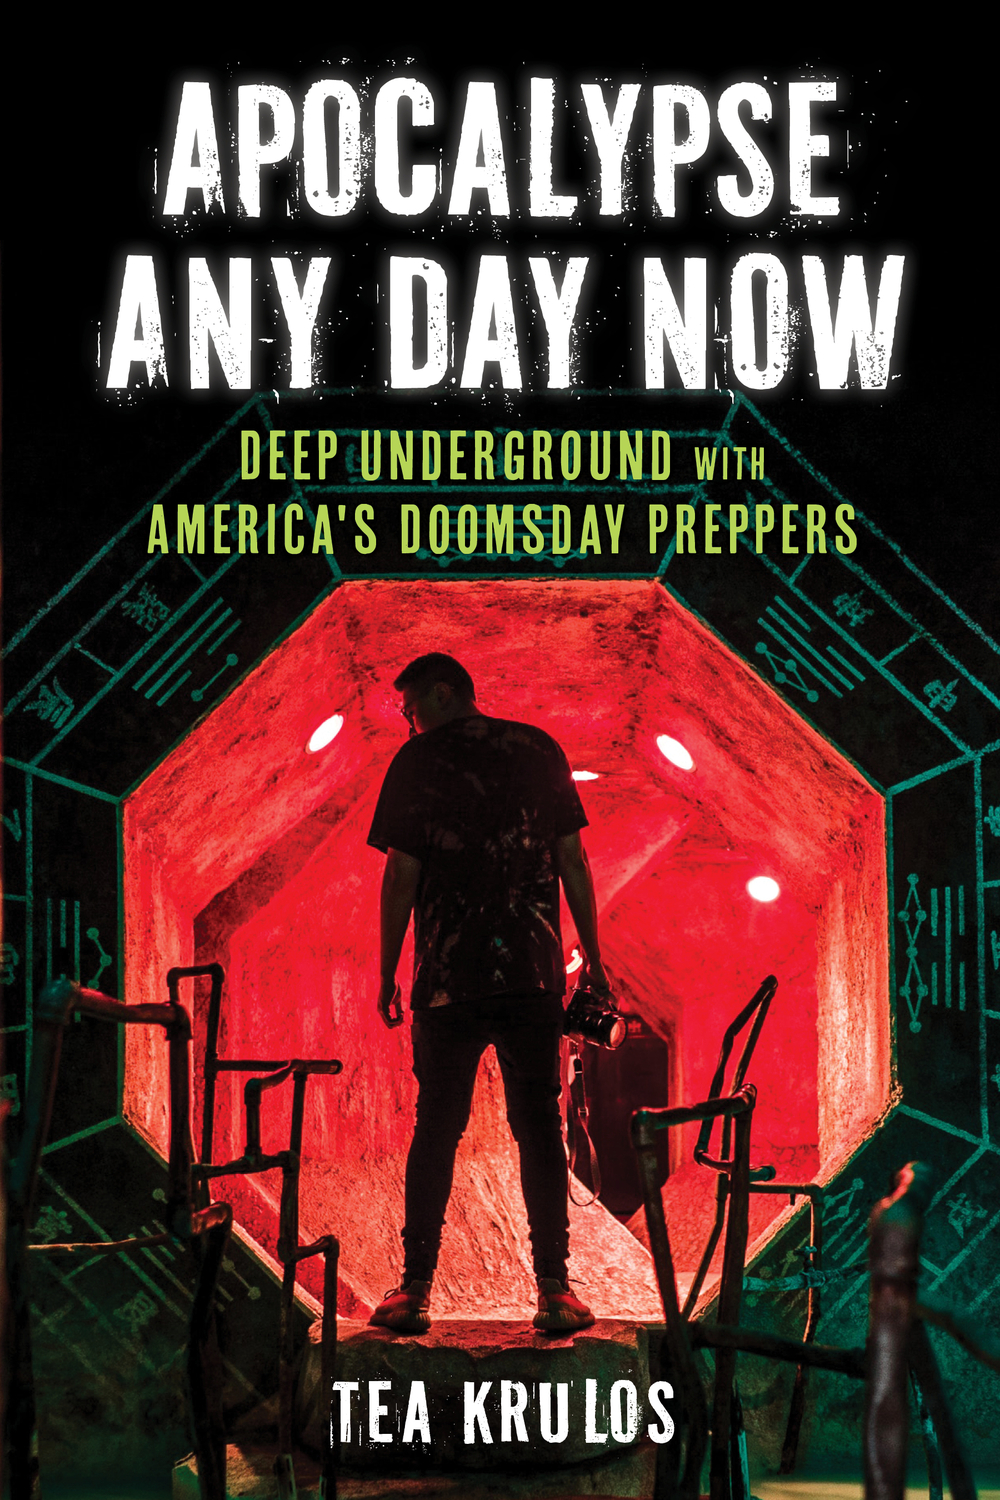 Apocalypse Any Day Now: Deep Underground with America's Doomsday Preppers.